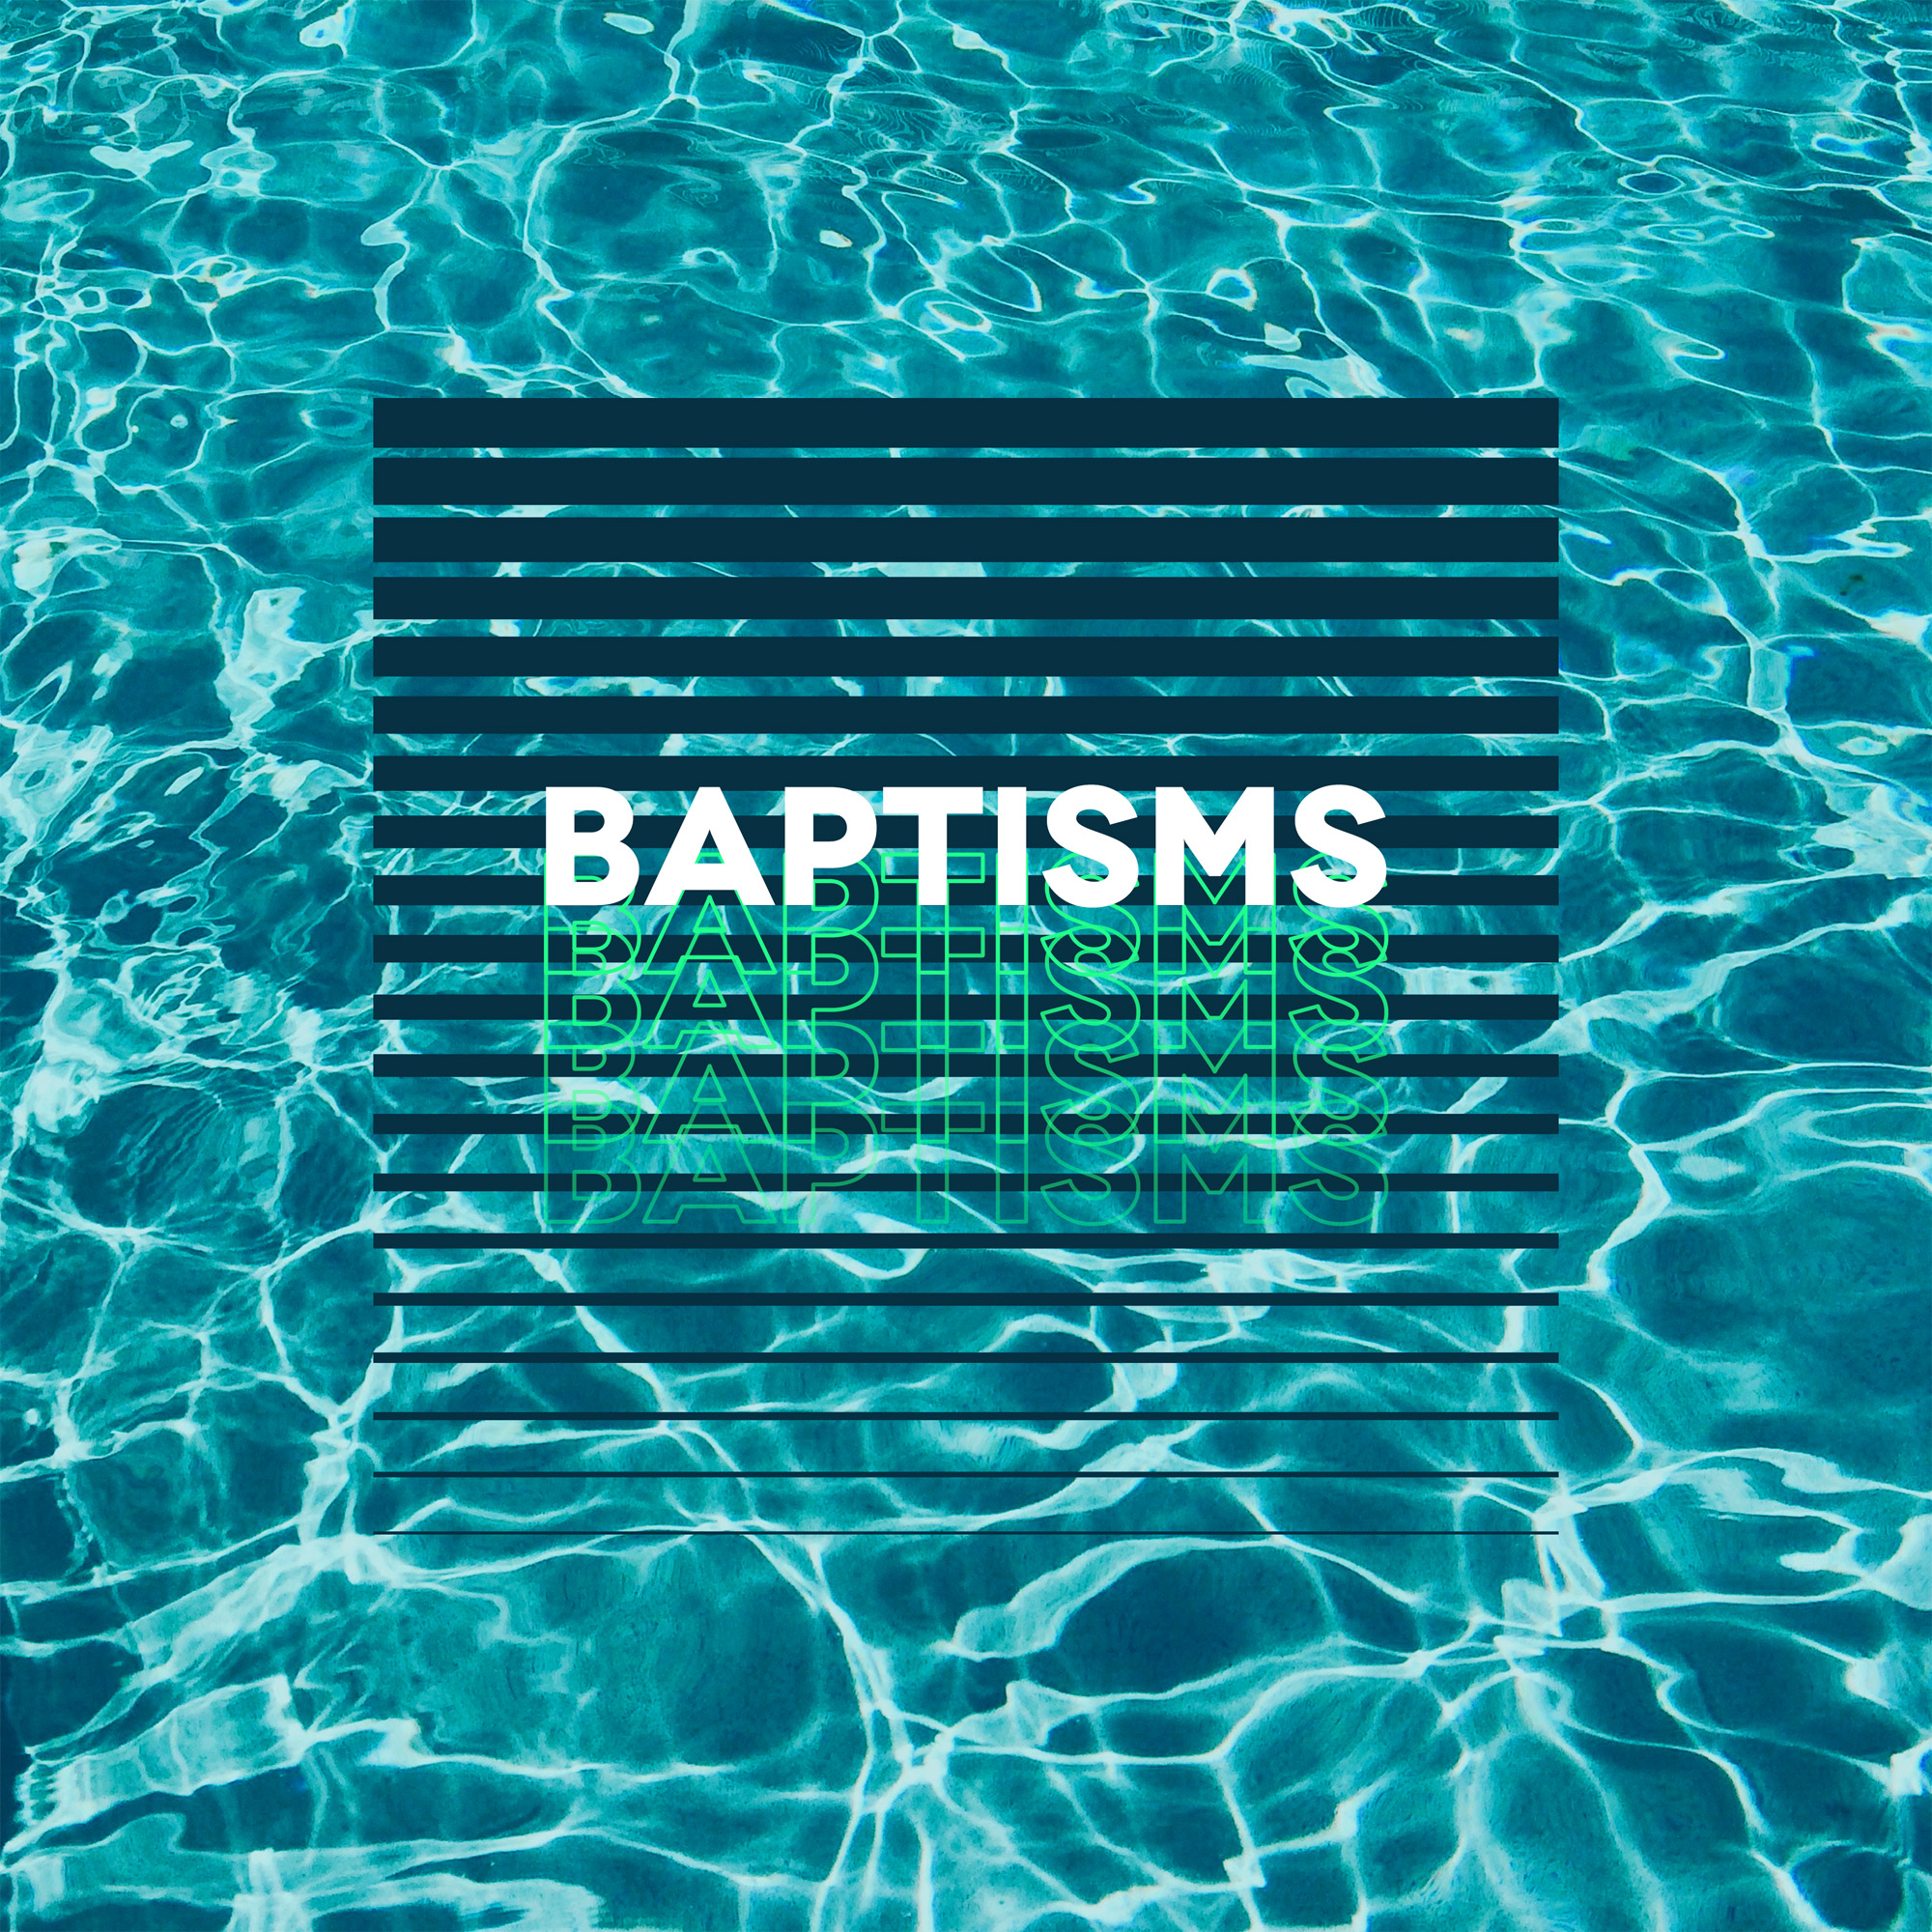 <p>Let&#39;s go church! Do you want to be cleansed by the Word and publicly profess your faith in Christ? Sign up for baptism today and we will water baptize you out @ a private lake in Troy, MO. Invite your friends and family! Baptism will be Sunday, August 11th at 2pm. It&#39;s a season to celebrate, God is changing lives!</p>